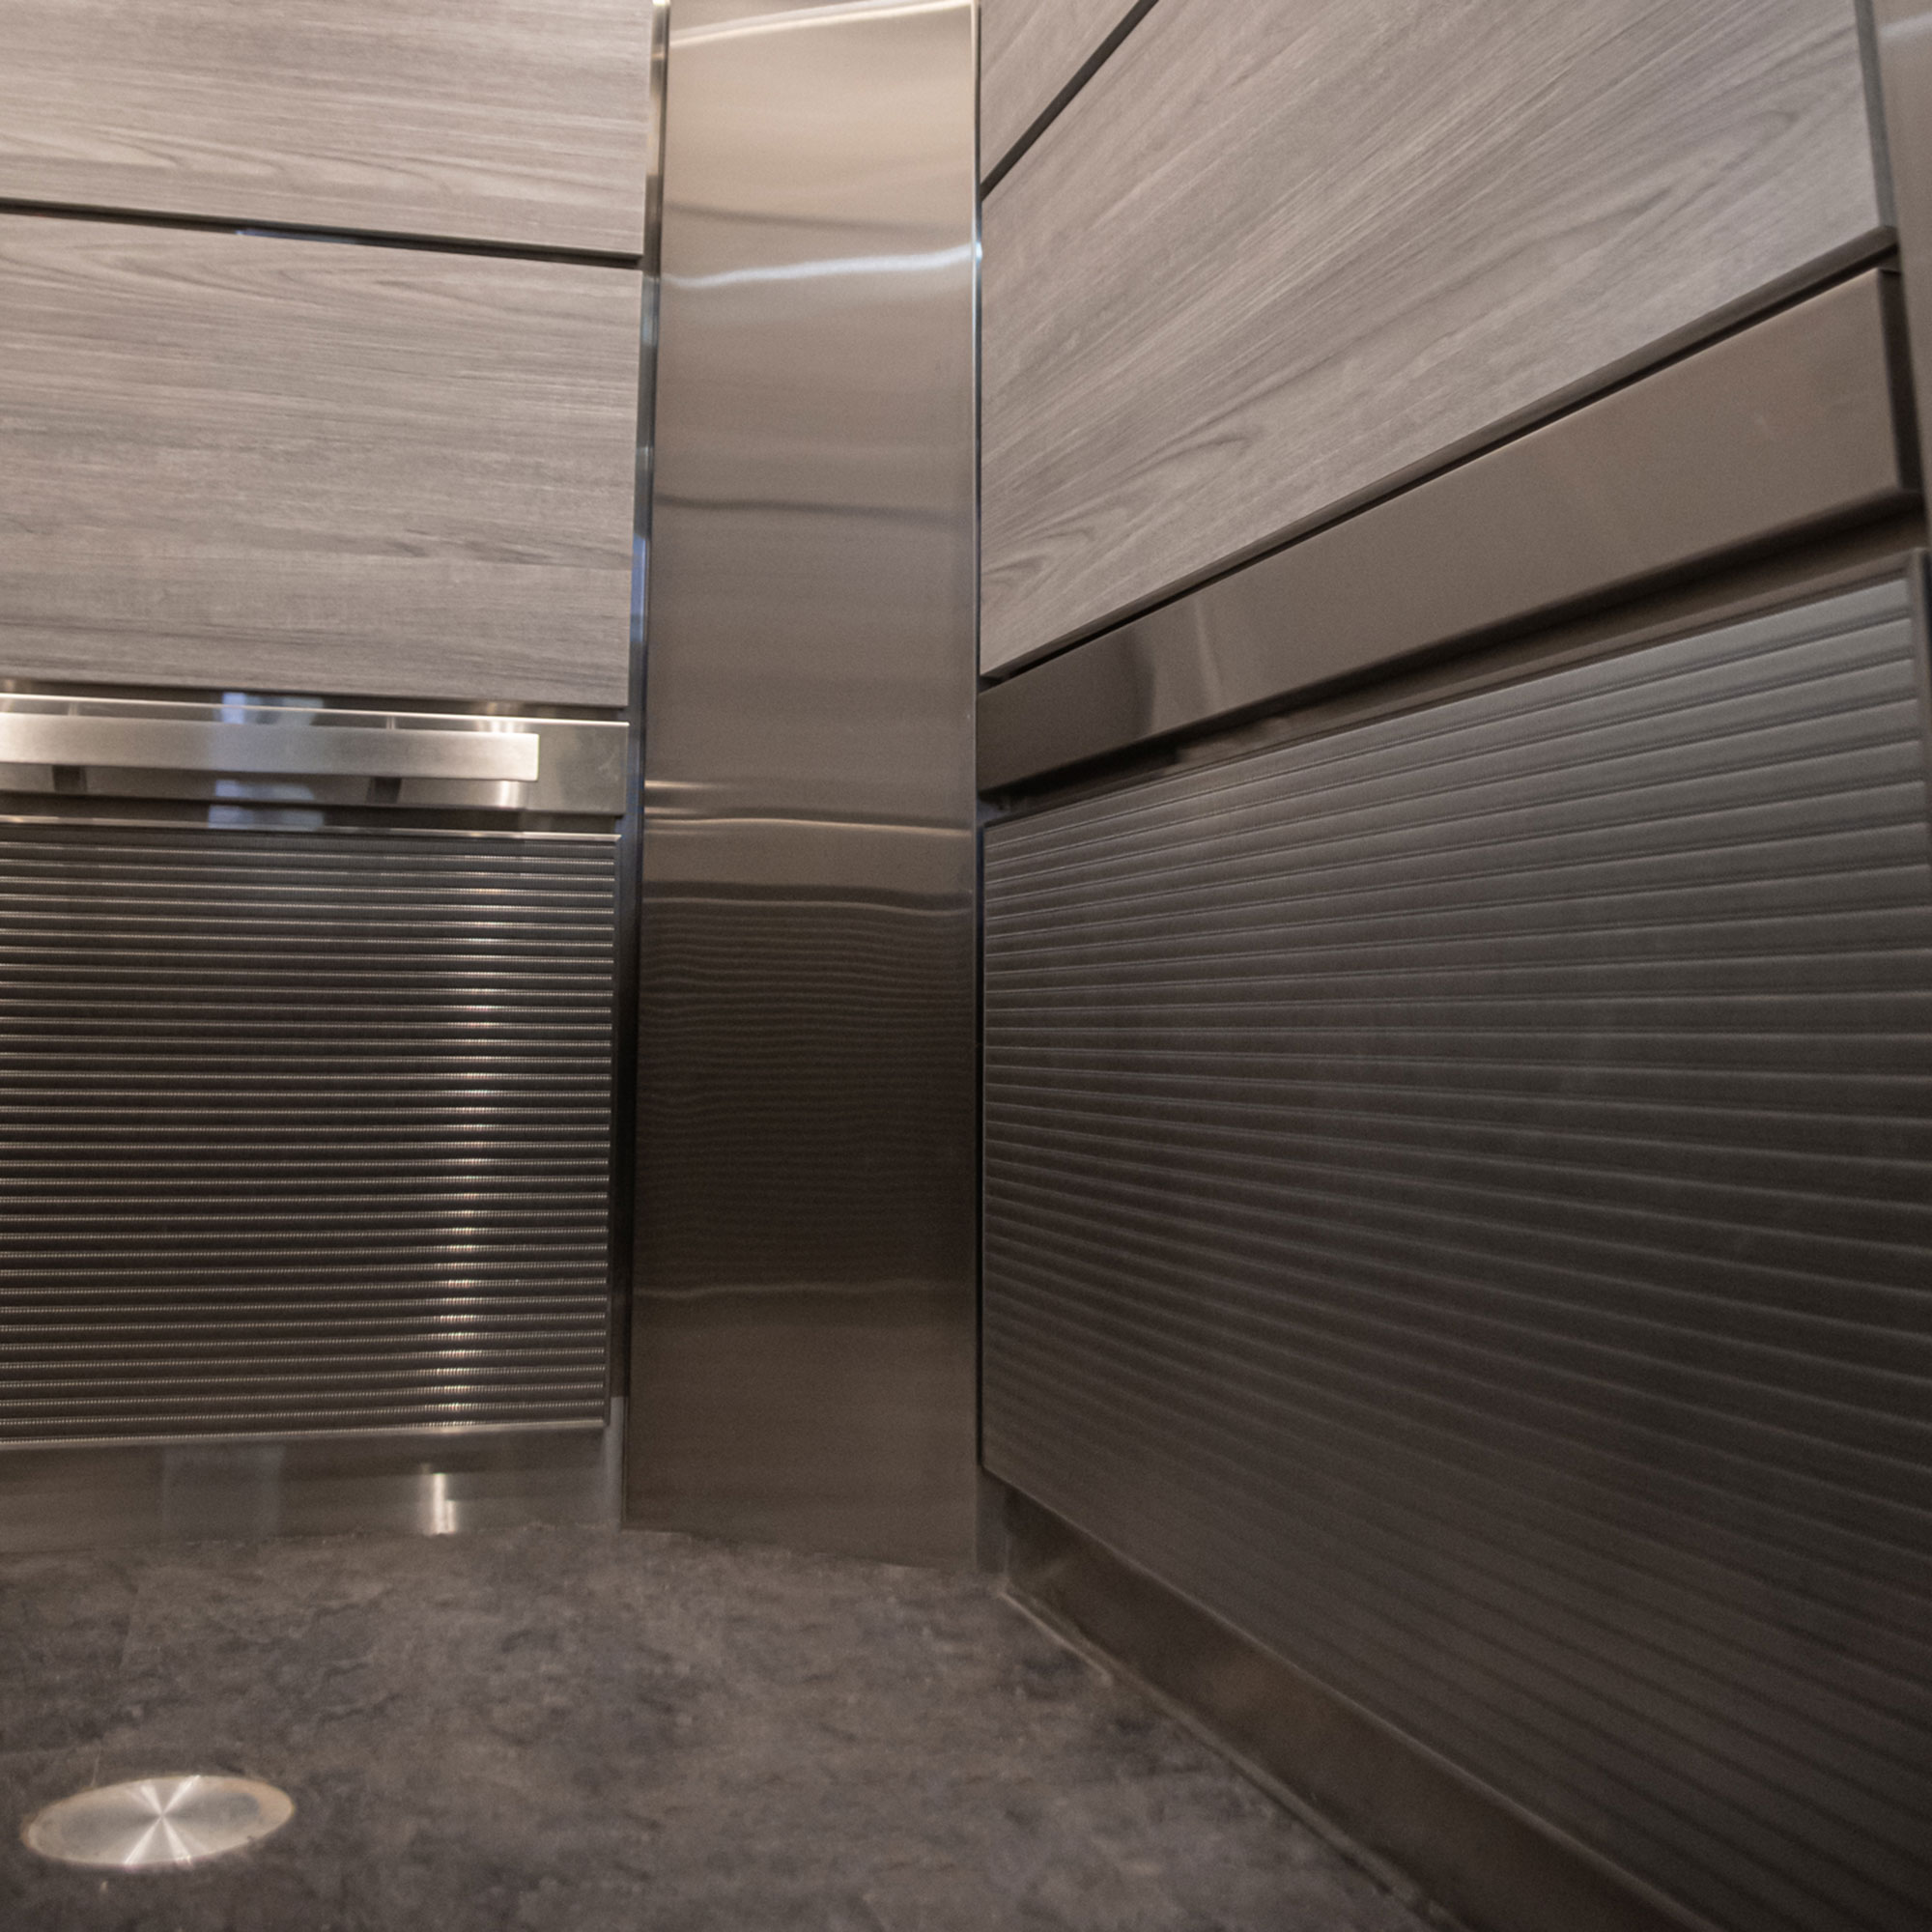 Banker's stainless steel wire mesh panels in the elevator cab.